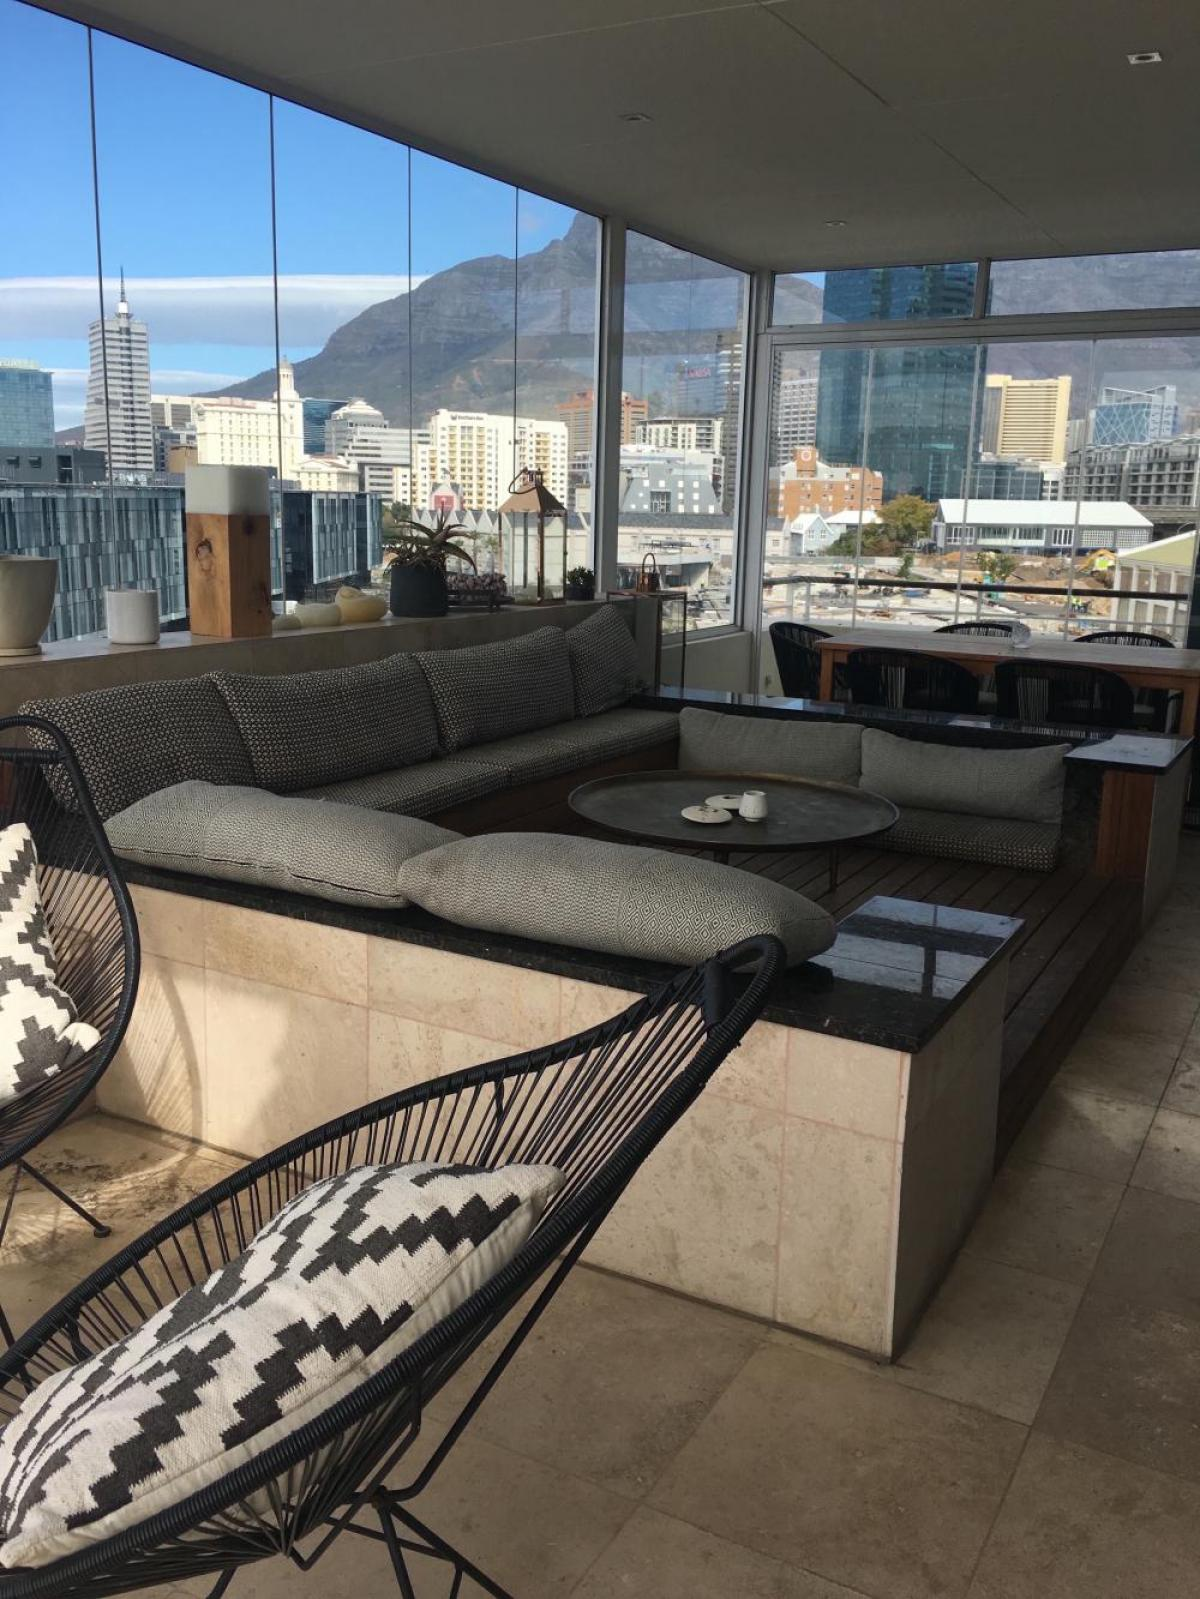 Property listed For Rent in Cape Town, South Africa